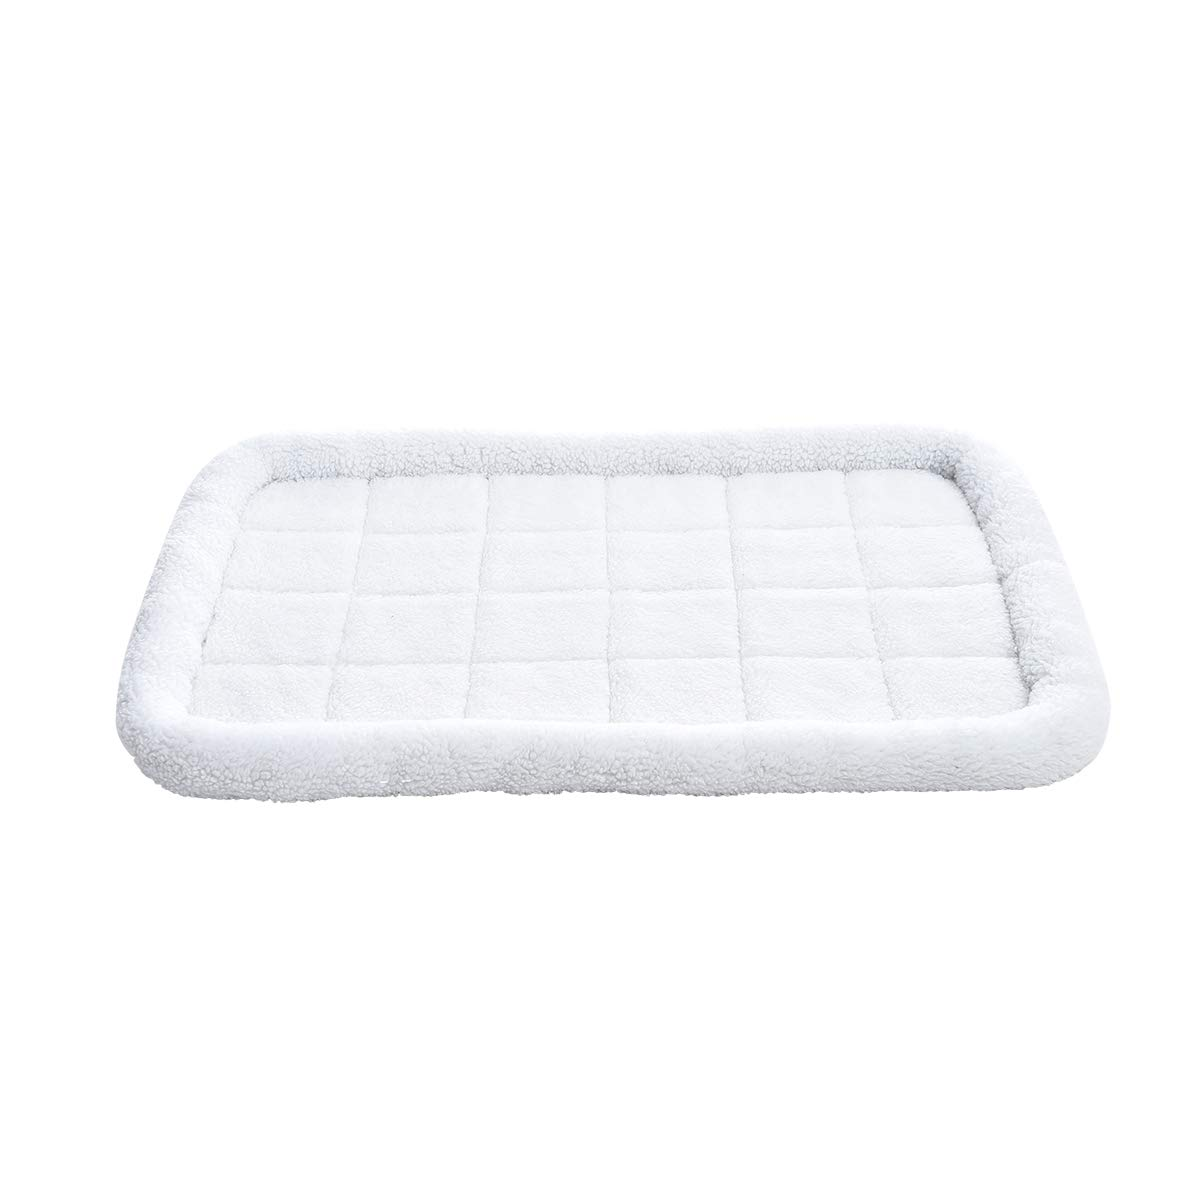 AmazonBasics Padded Pet Bolster Crate Bed Pad - 40 x 26 Inches